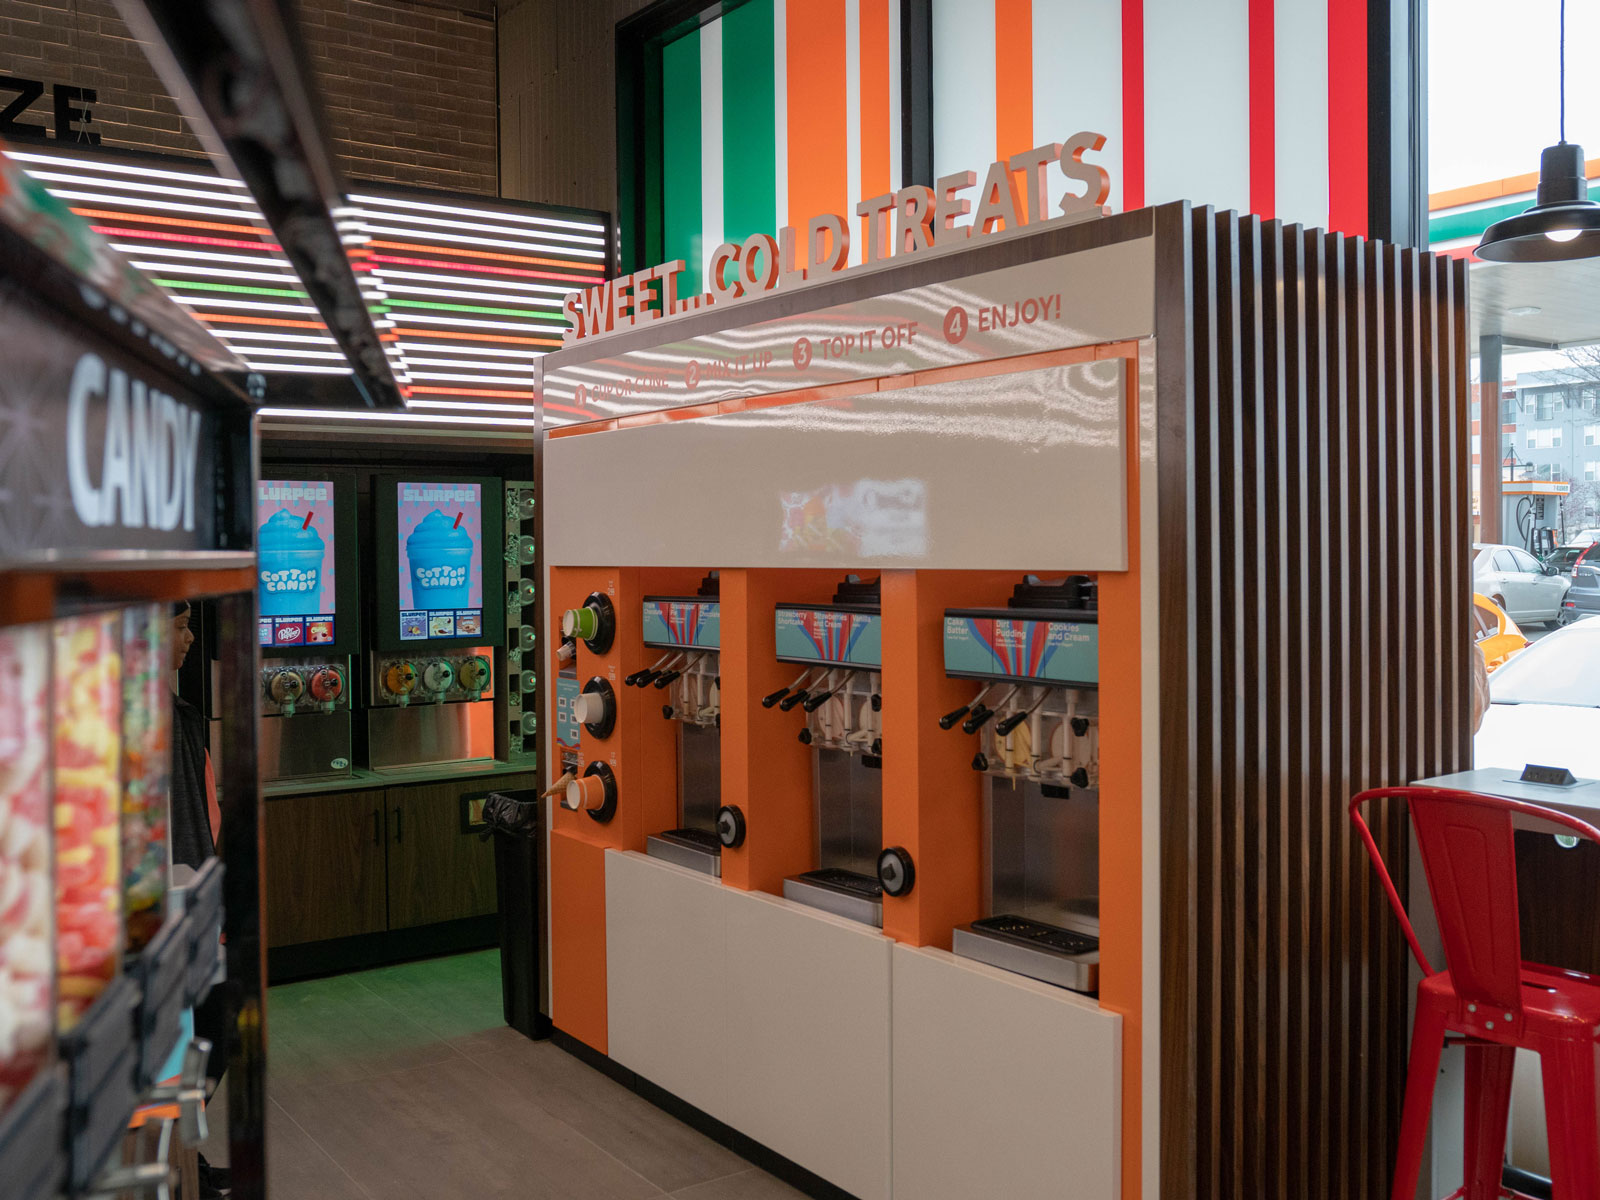 7-Eleven Opened a Sit-Down Cafe Concept 7-eleven-restaurant-interior3-Ft-BLOG0319